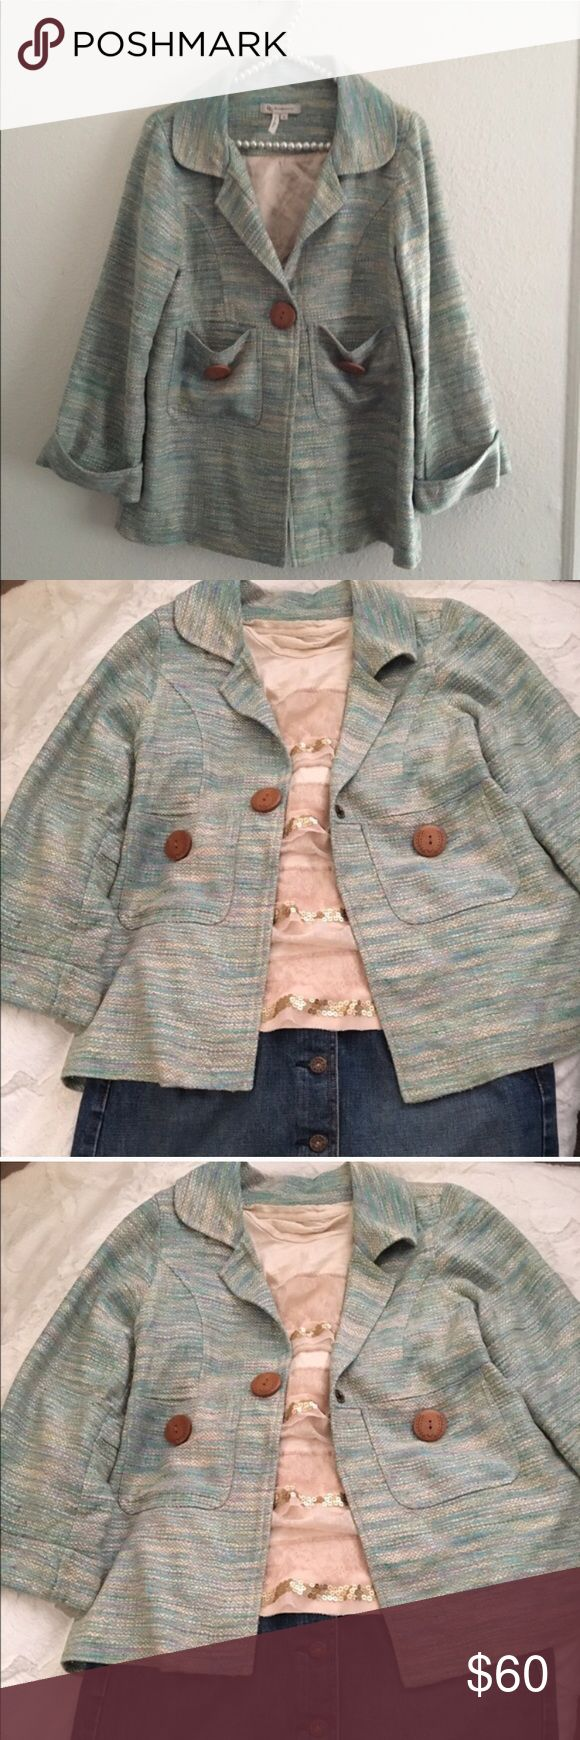 •BCBG babydoll jacket Cute work/casual jacket with front pockets and bow accent on the back. Dusty/baby blue color with colorful pattern on top. Size: medium but can fit an xs-med. offers are always welcomed💕 BCBGeneration Jackets & Coats